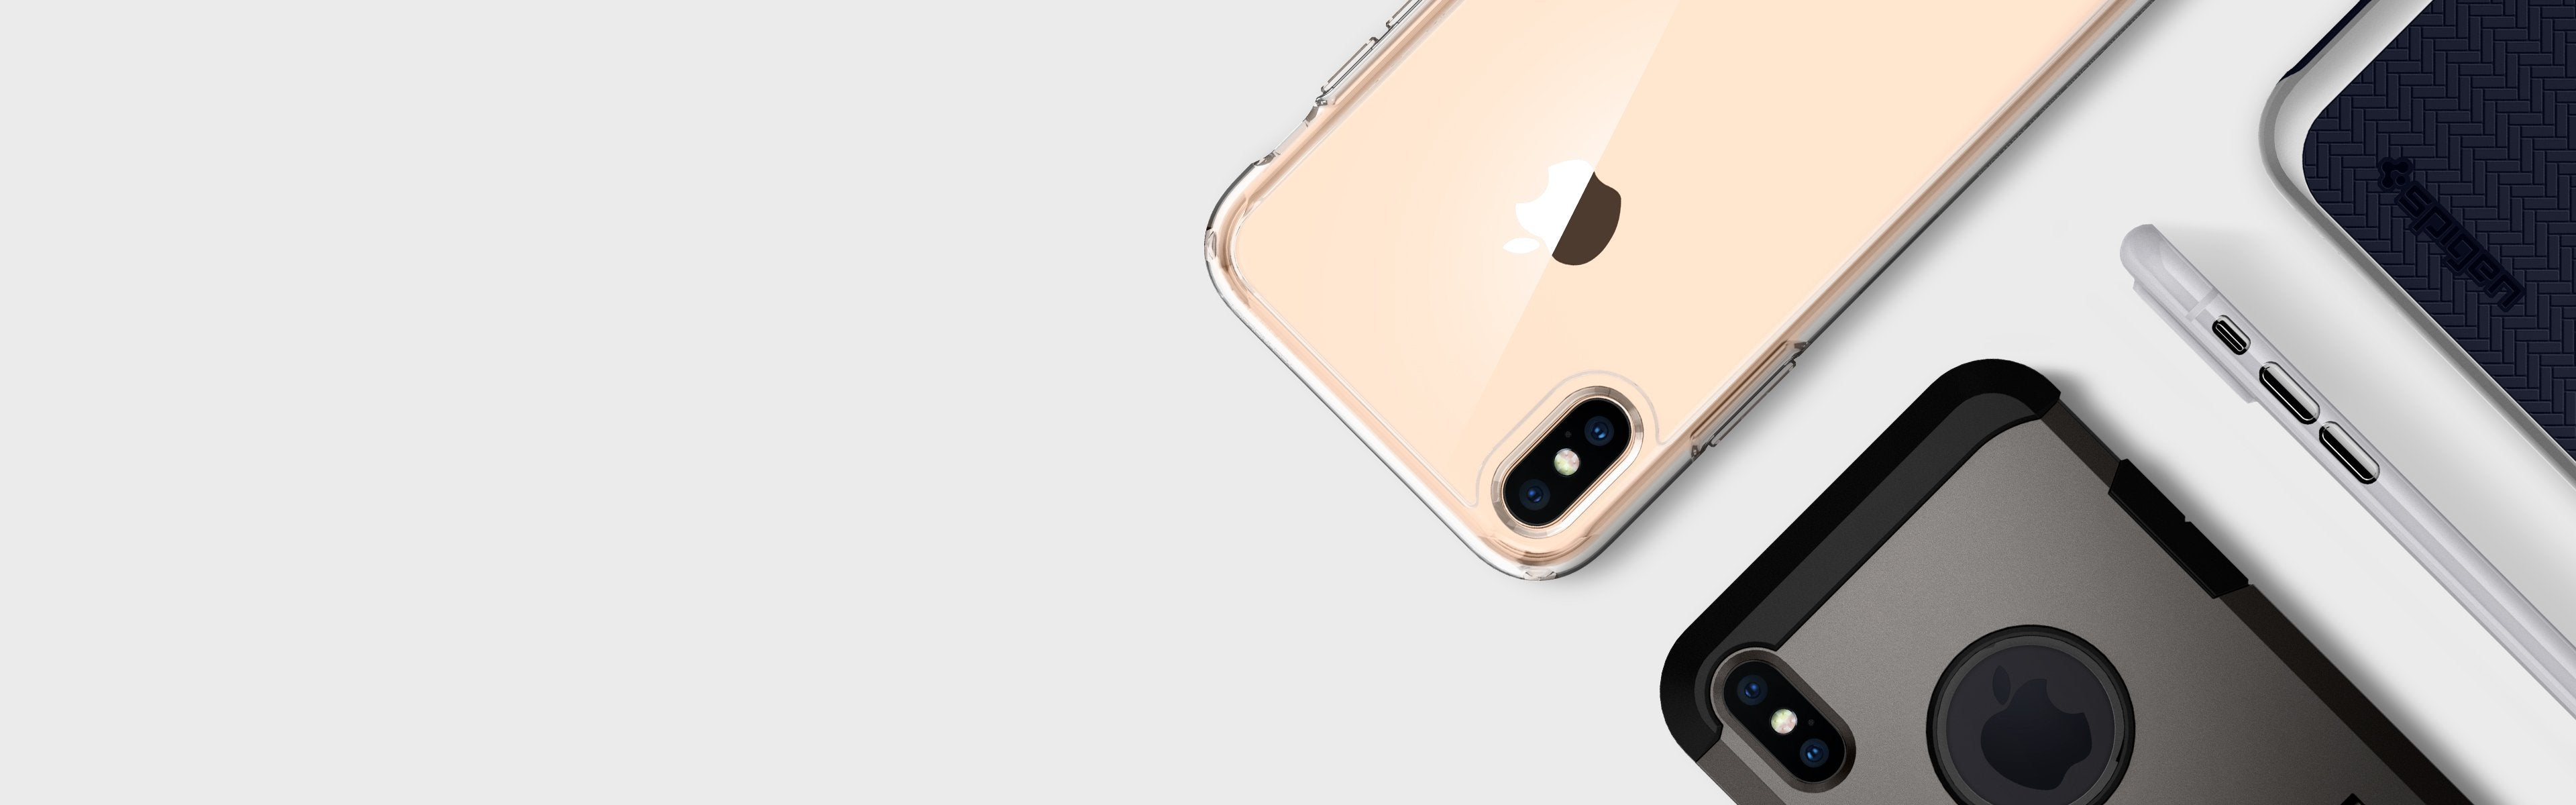 Spigen Cases for iPhone XS Max